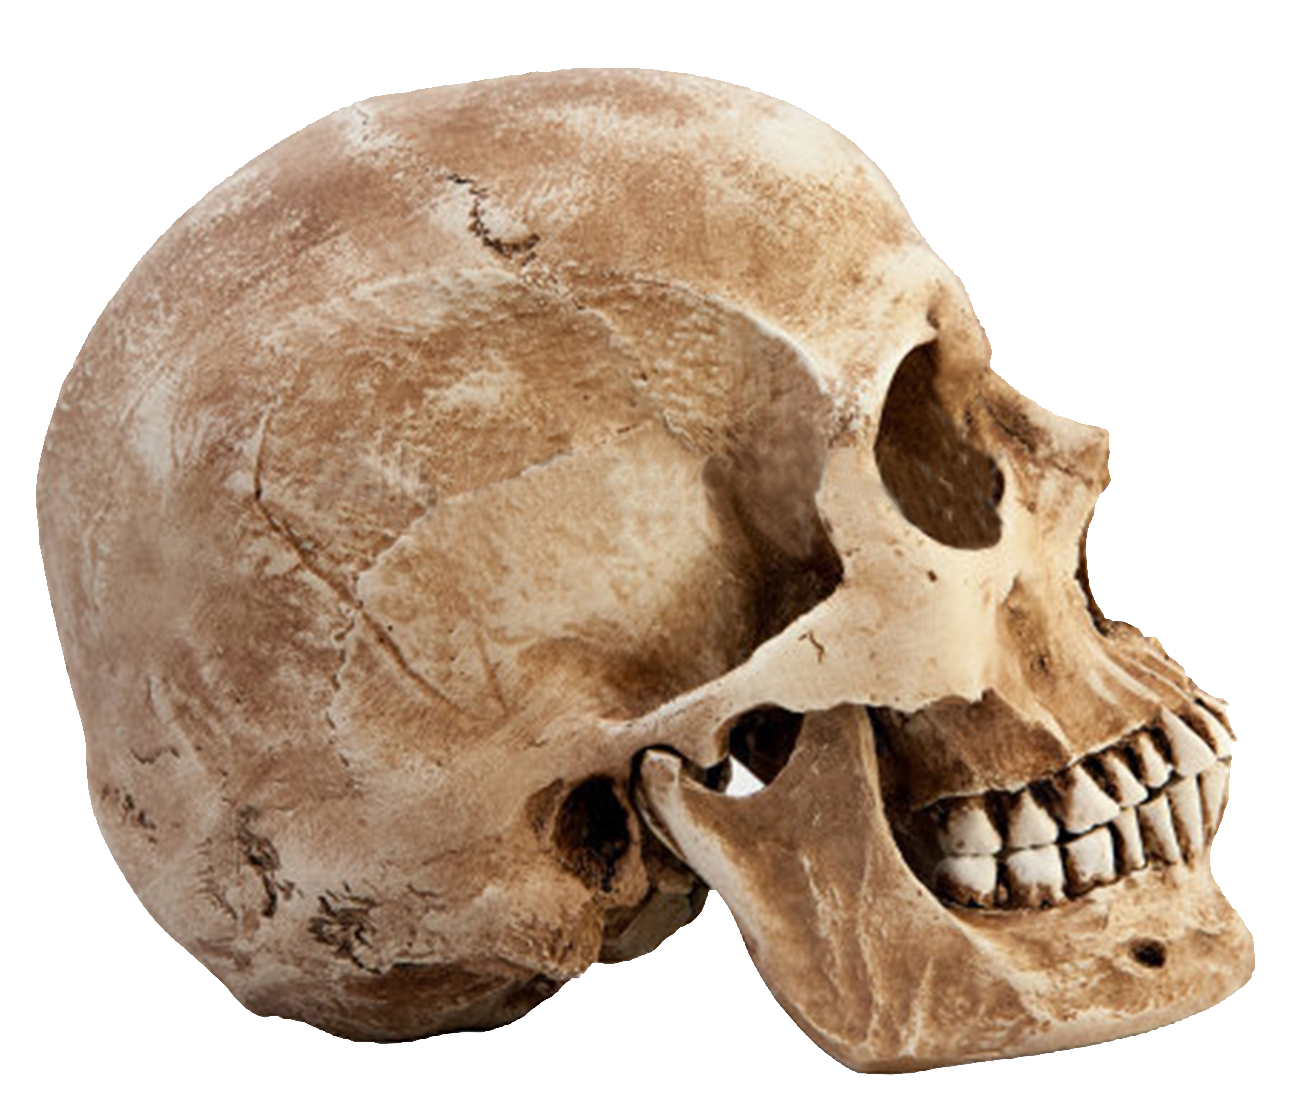 Skull png image purepng. Fossil clipart anthropology svg royalty free stock